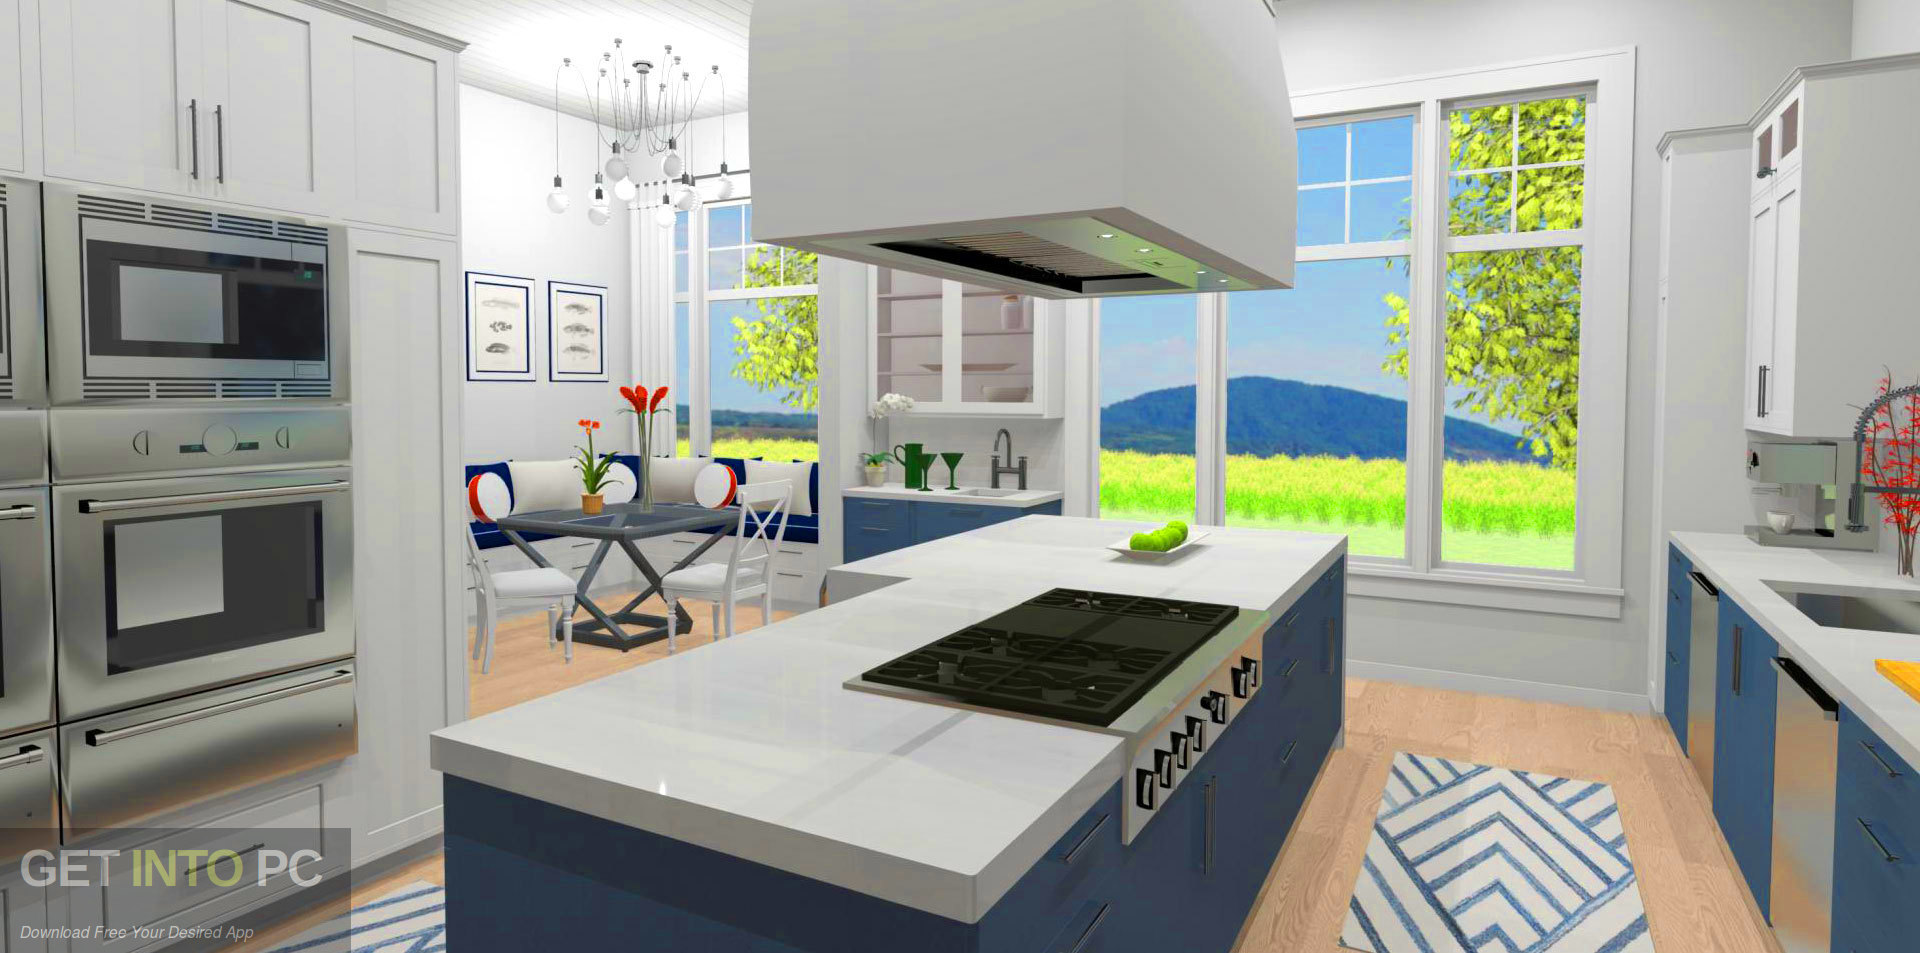 Home Designer Pro 2020 Direct Link Download-GetintoPC.com